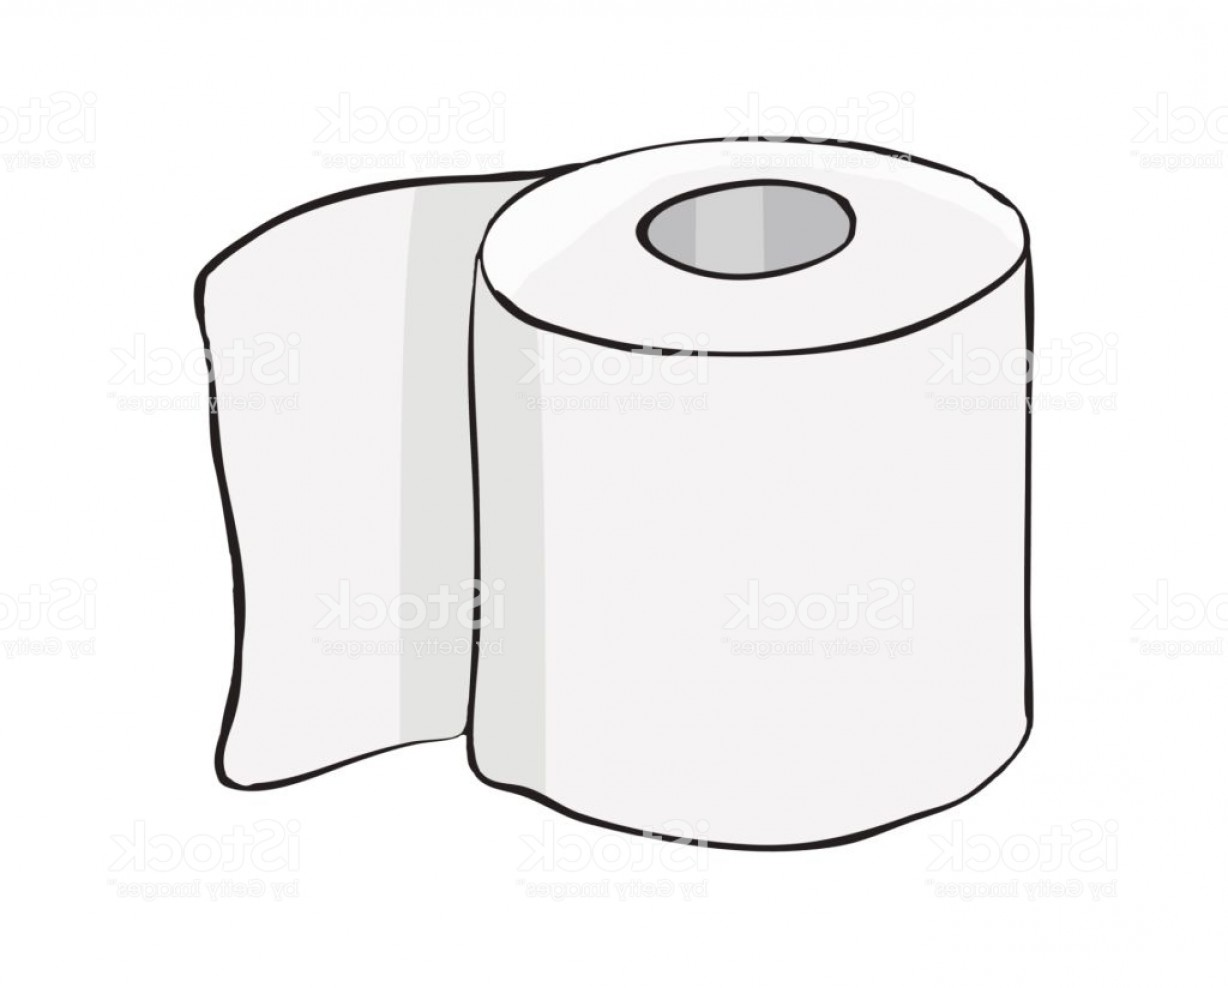 Toilet Paper Vector: Toilet Paper Roll Vector Symbol Icon Design Beautiful Illustration Isolated On White Gm